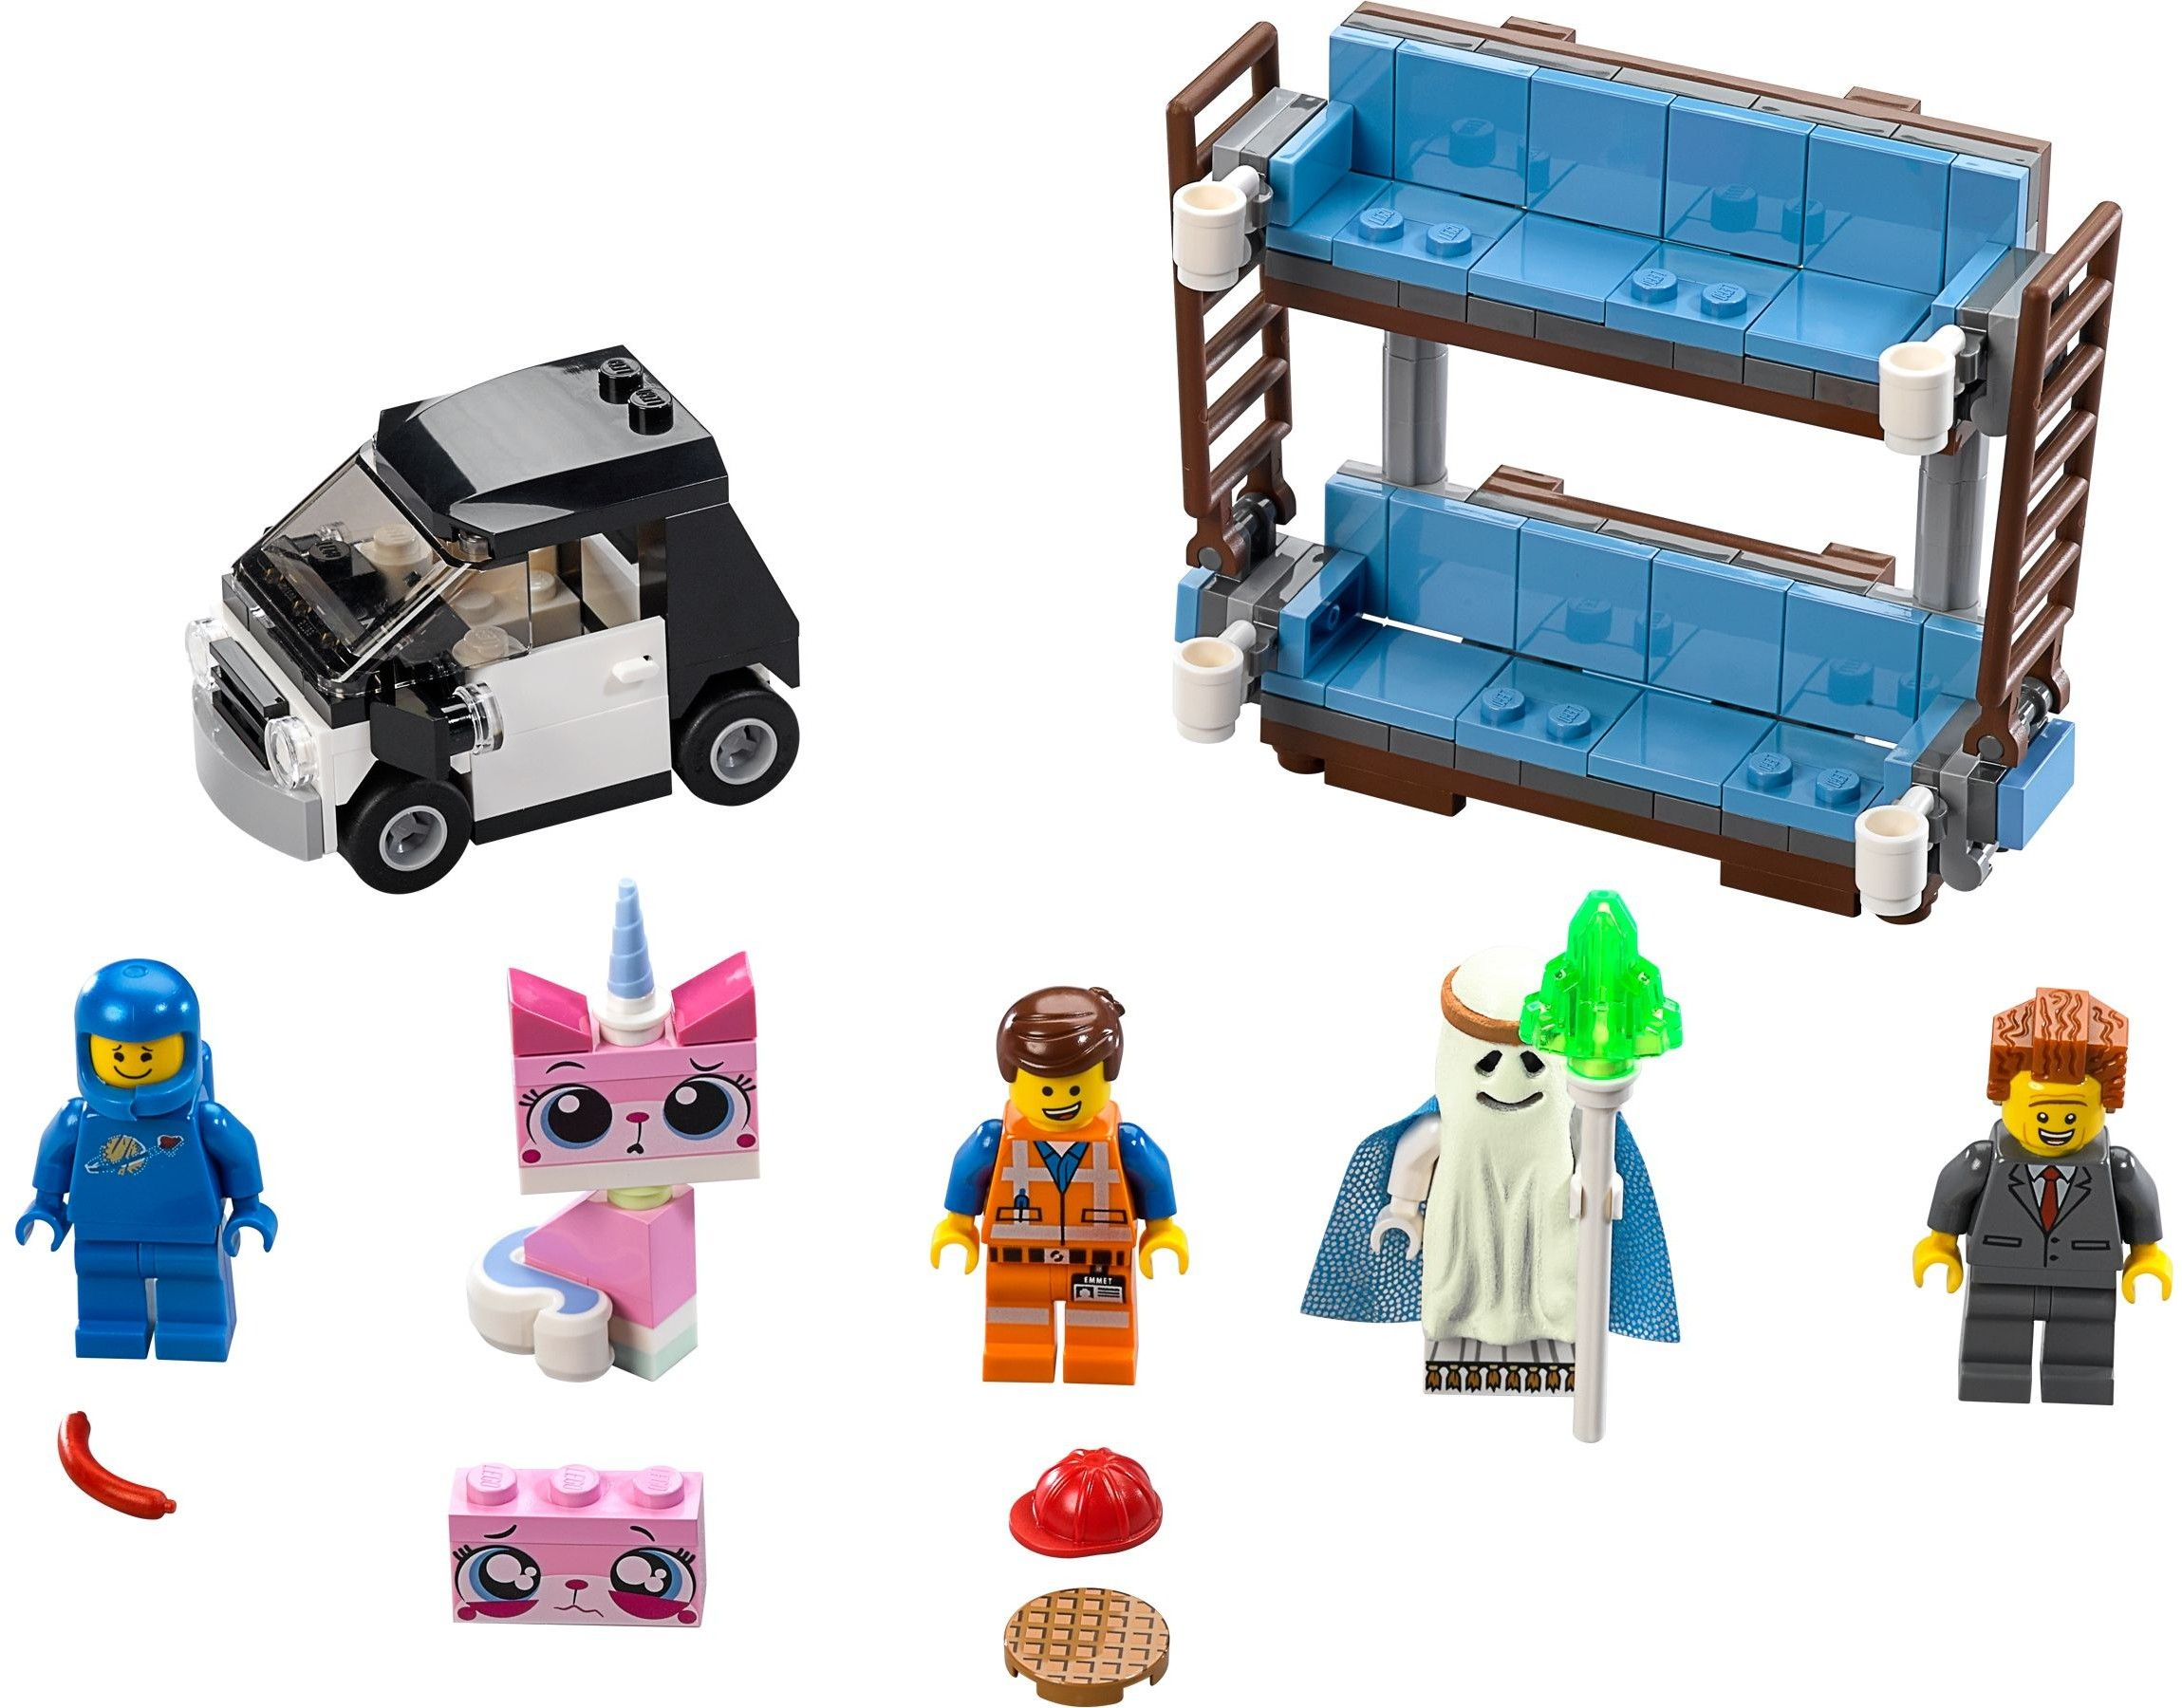 70818 1 Double Decker Couch Lego Movie Sets Lego Movie Lego News